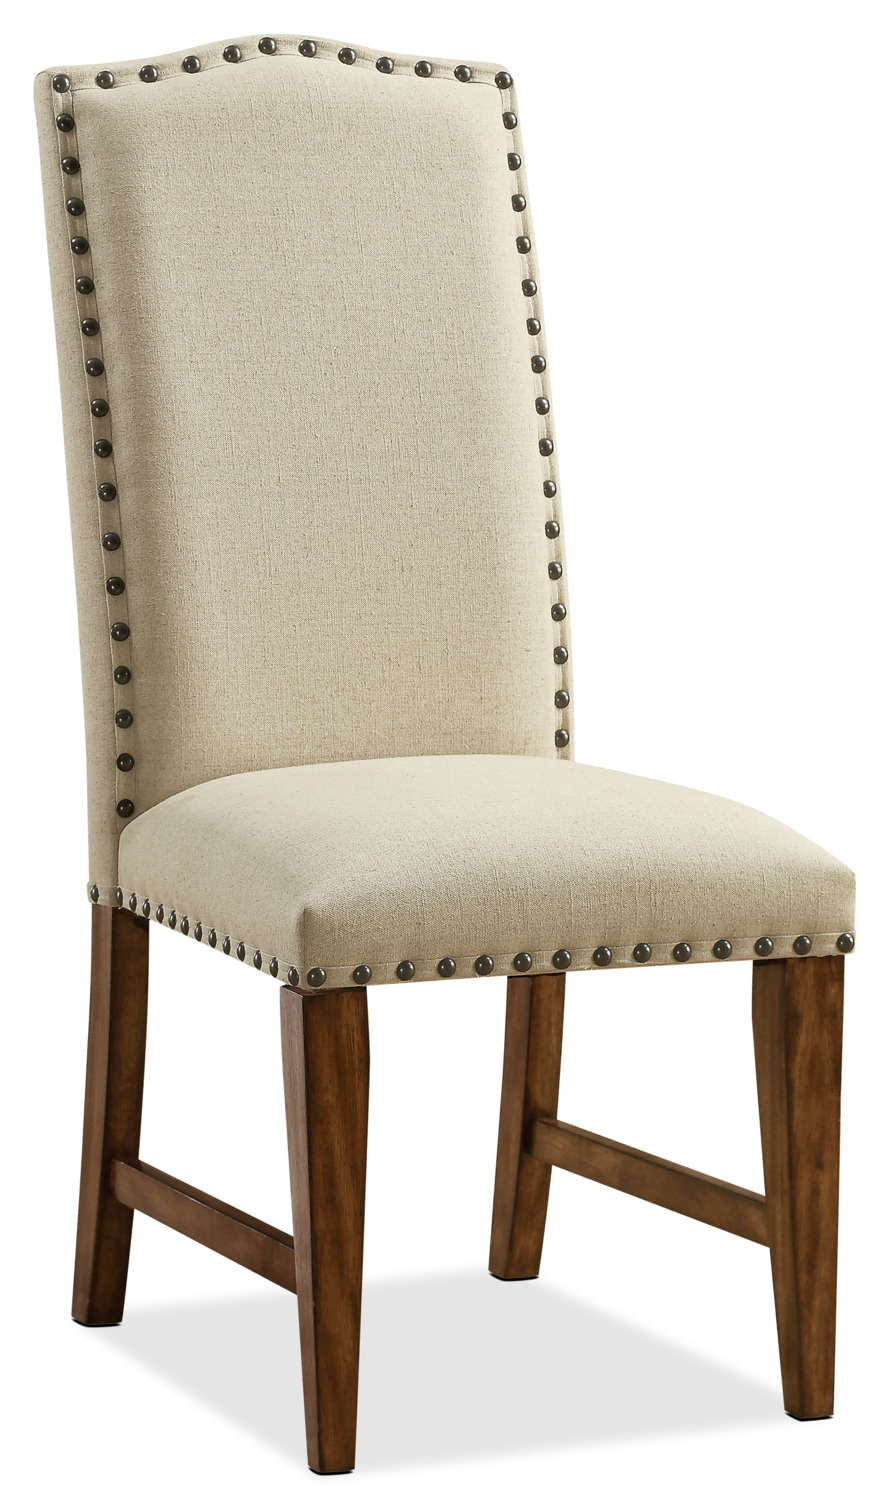 Alpine Dining Chair – Beige